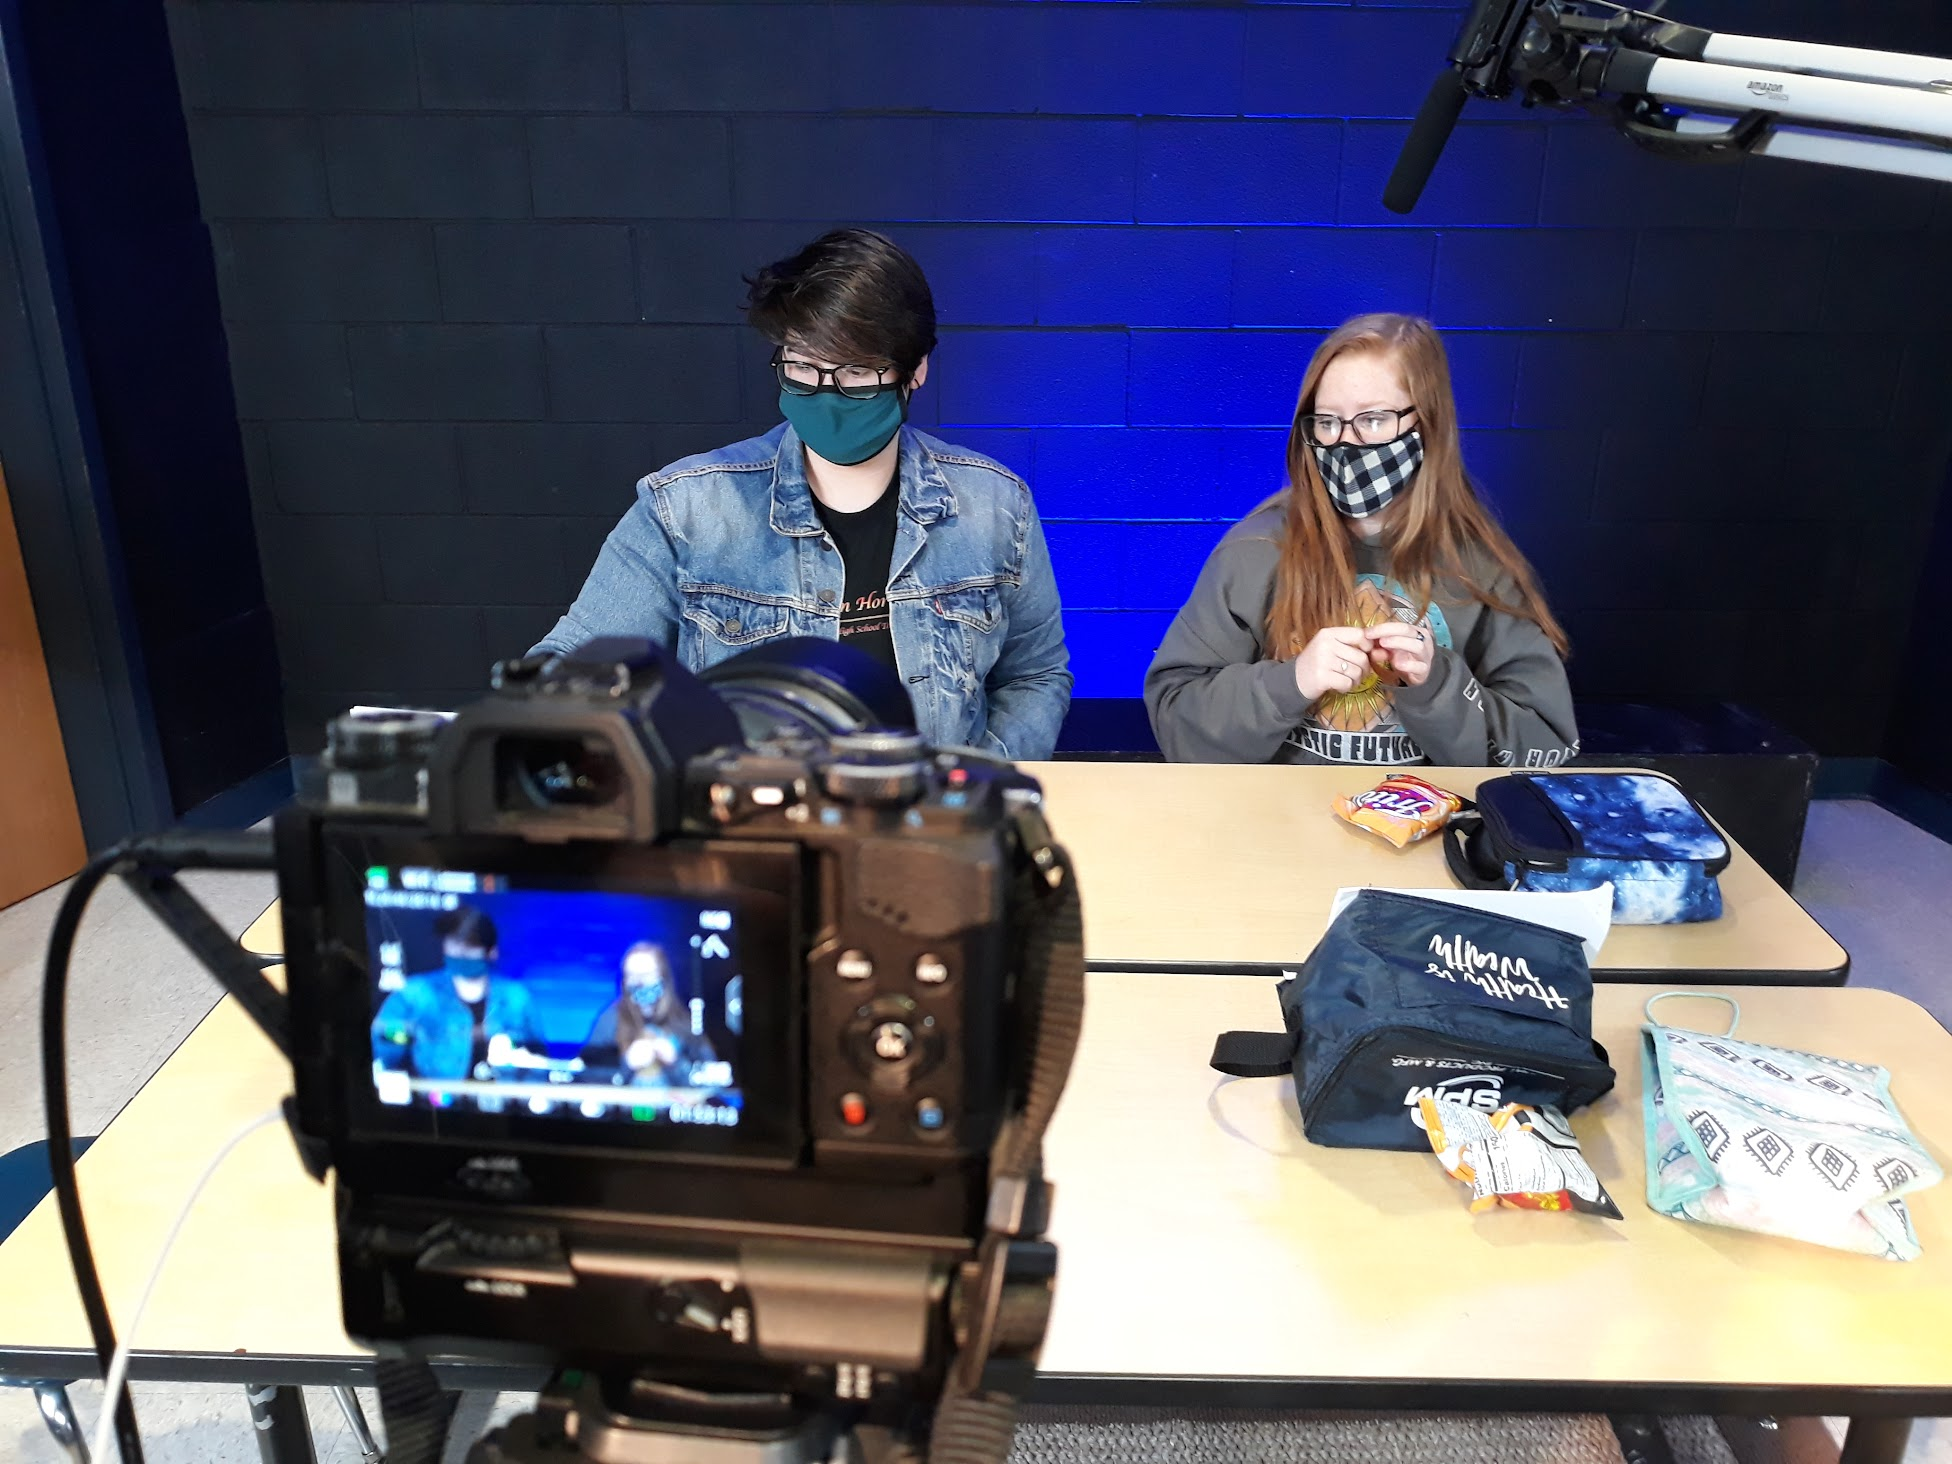 Students sitting in front of a camera with masks on